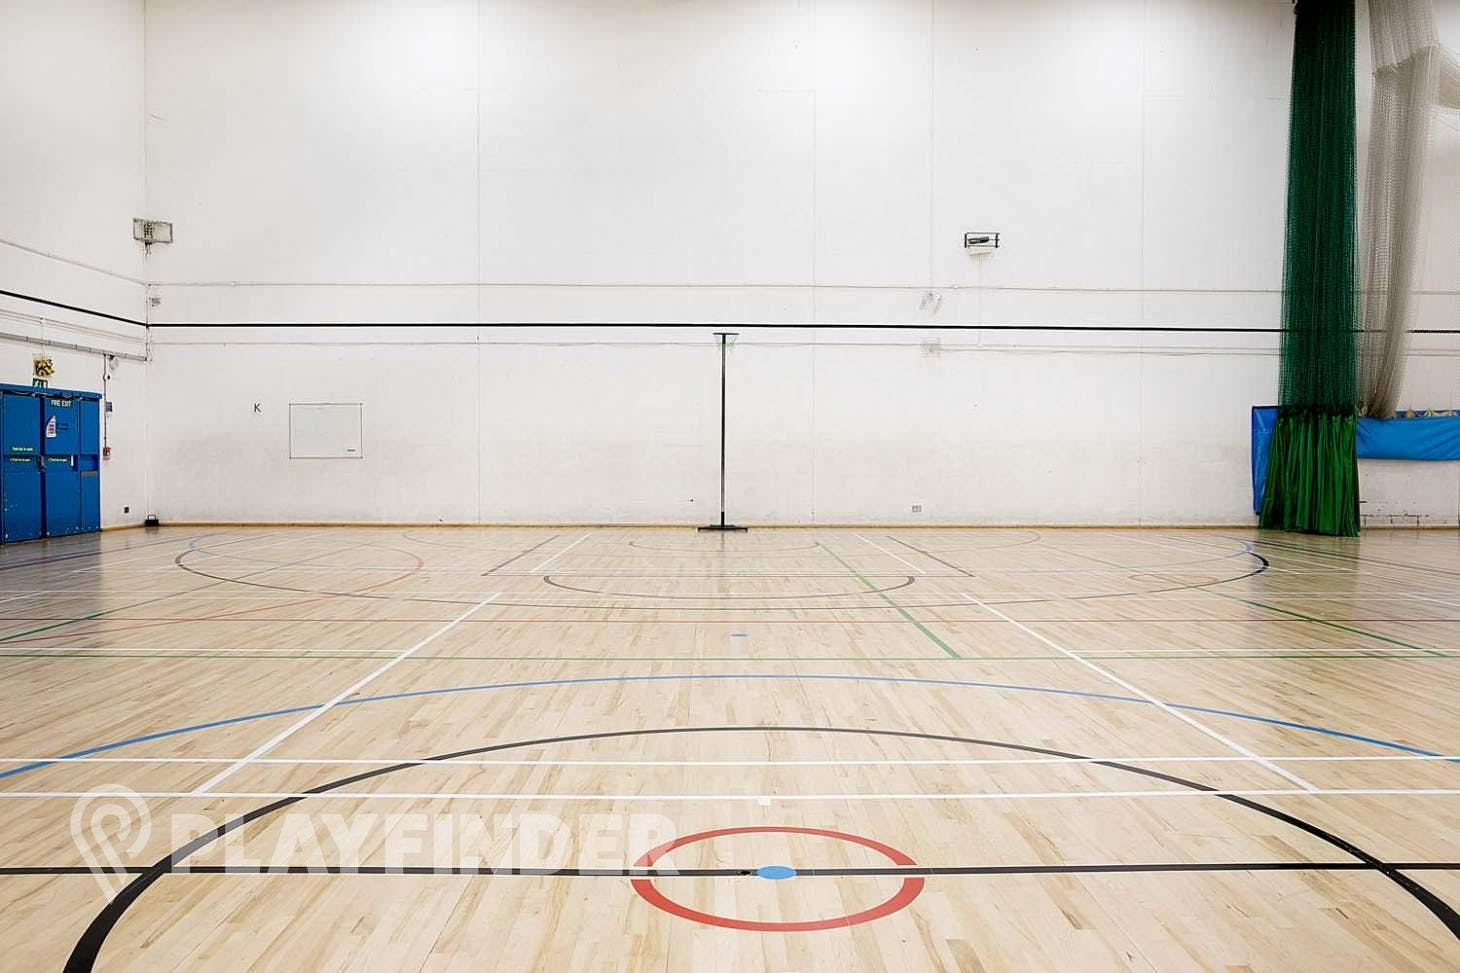 Somers Town Community Sports Centre Court | Sports hall volleyball court